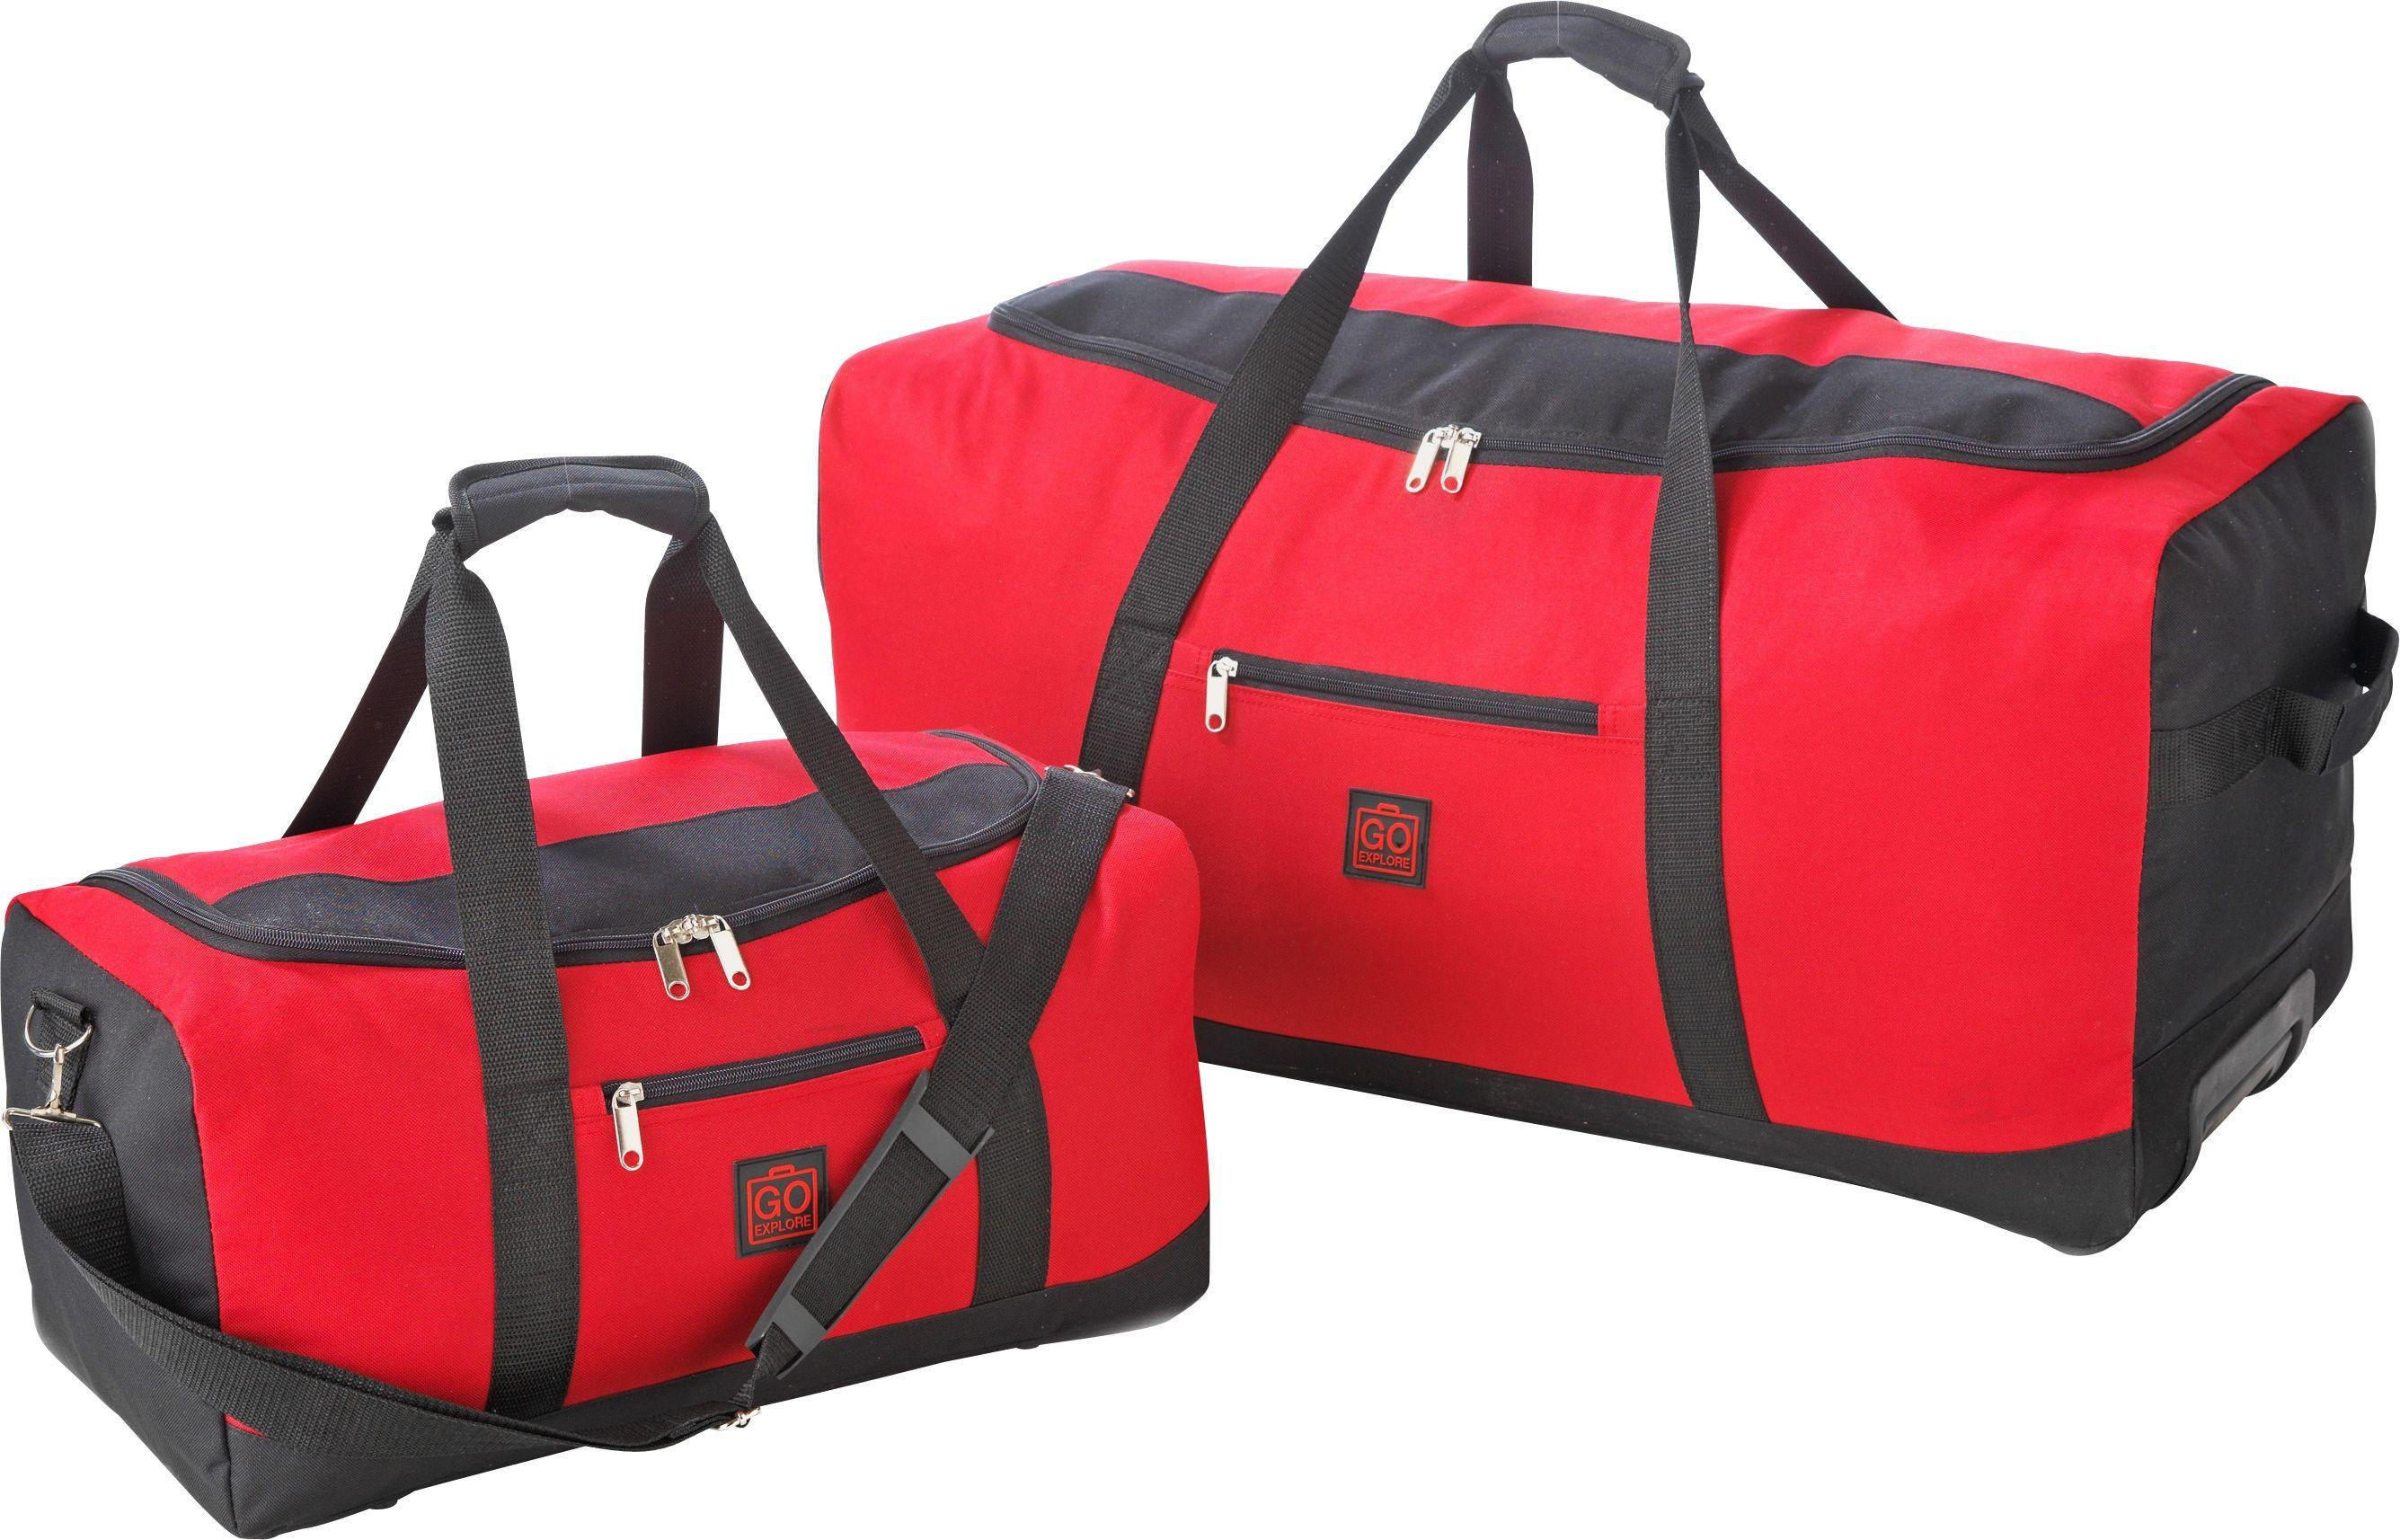 Go Explore Extra Large Red Wheeled Holdall and Holdall Set